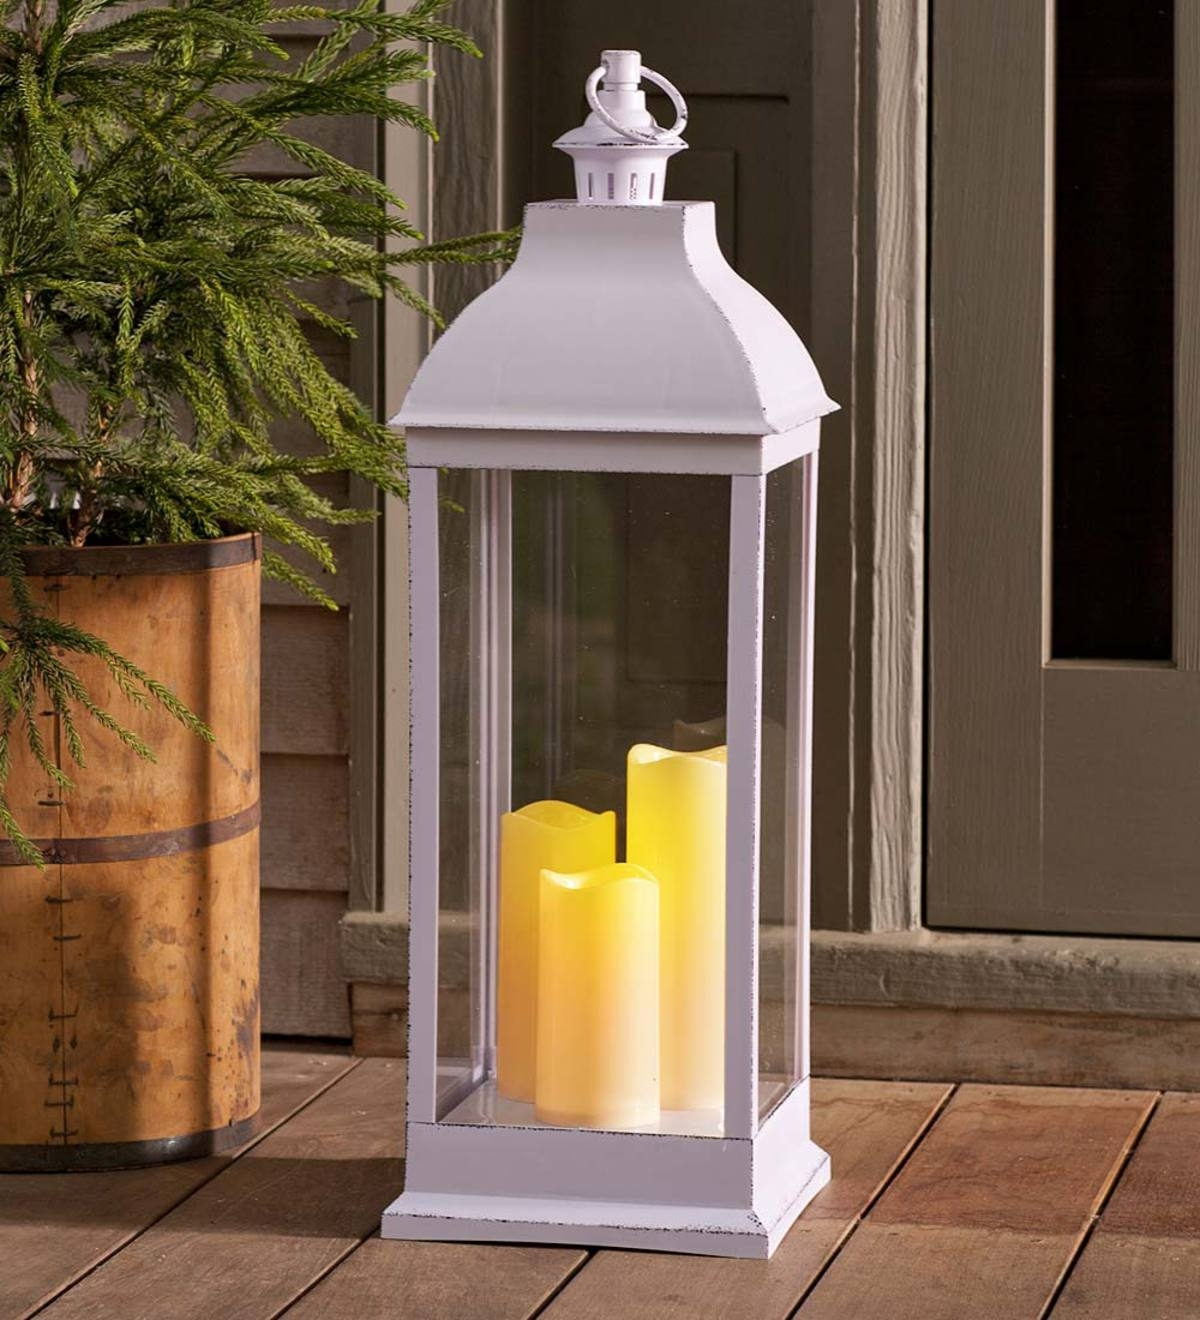 Plowhearth Pertaining To Latest Resin Outdoor Lanterns (View 10 of 20)